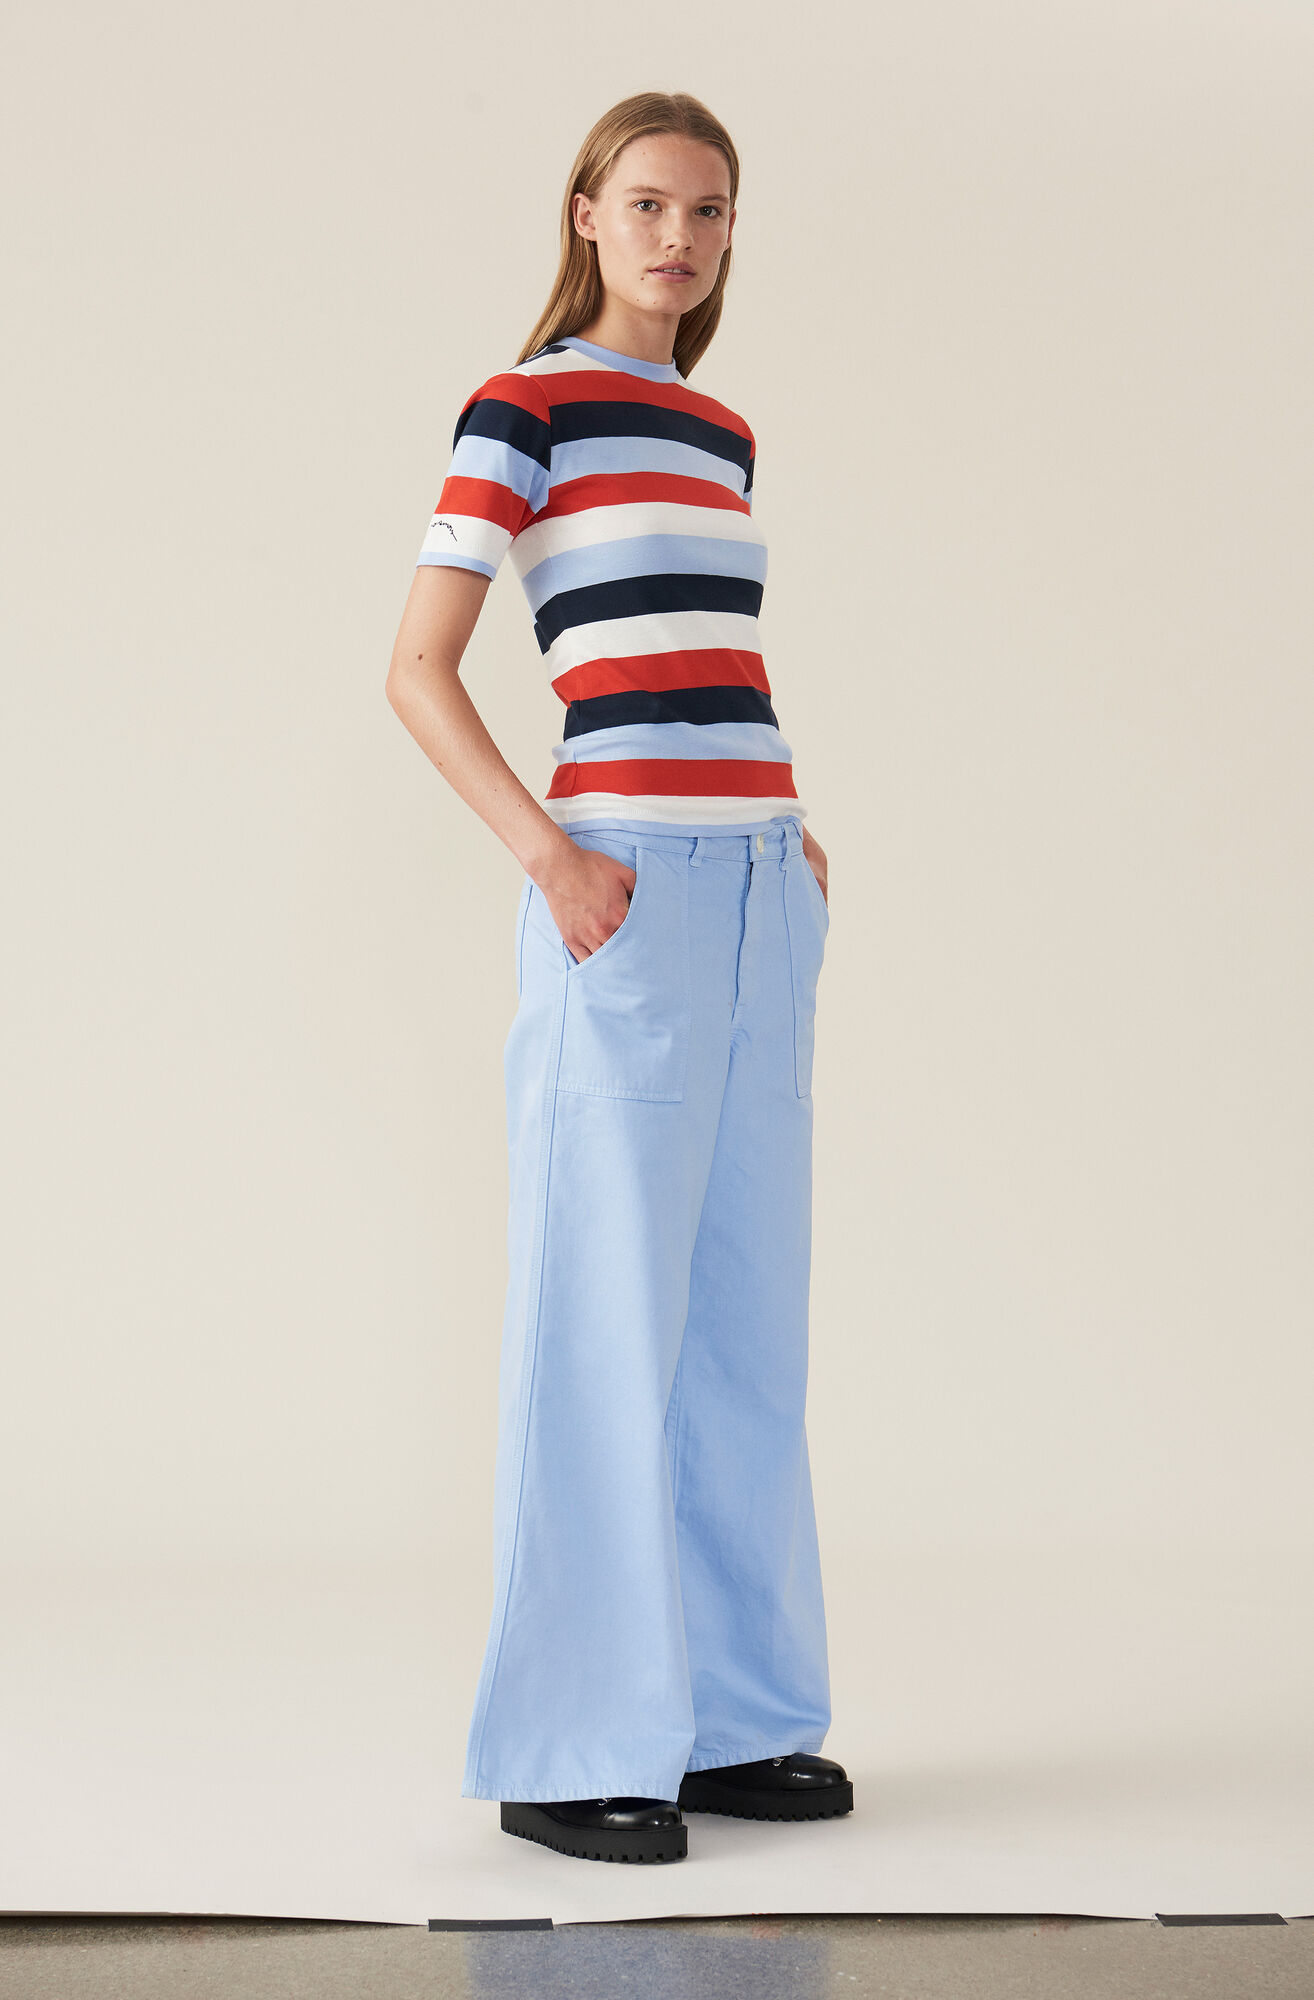 Stripe Rib T-shirt, Stripes, Multicolour, hi-res